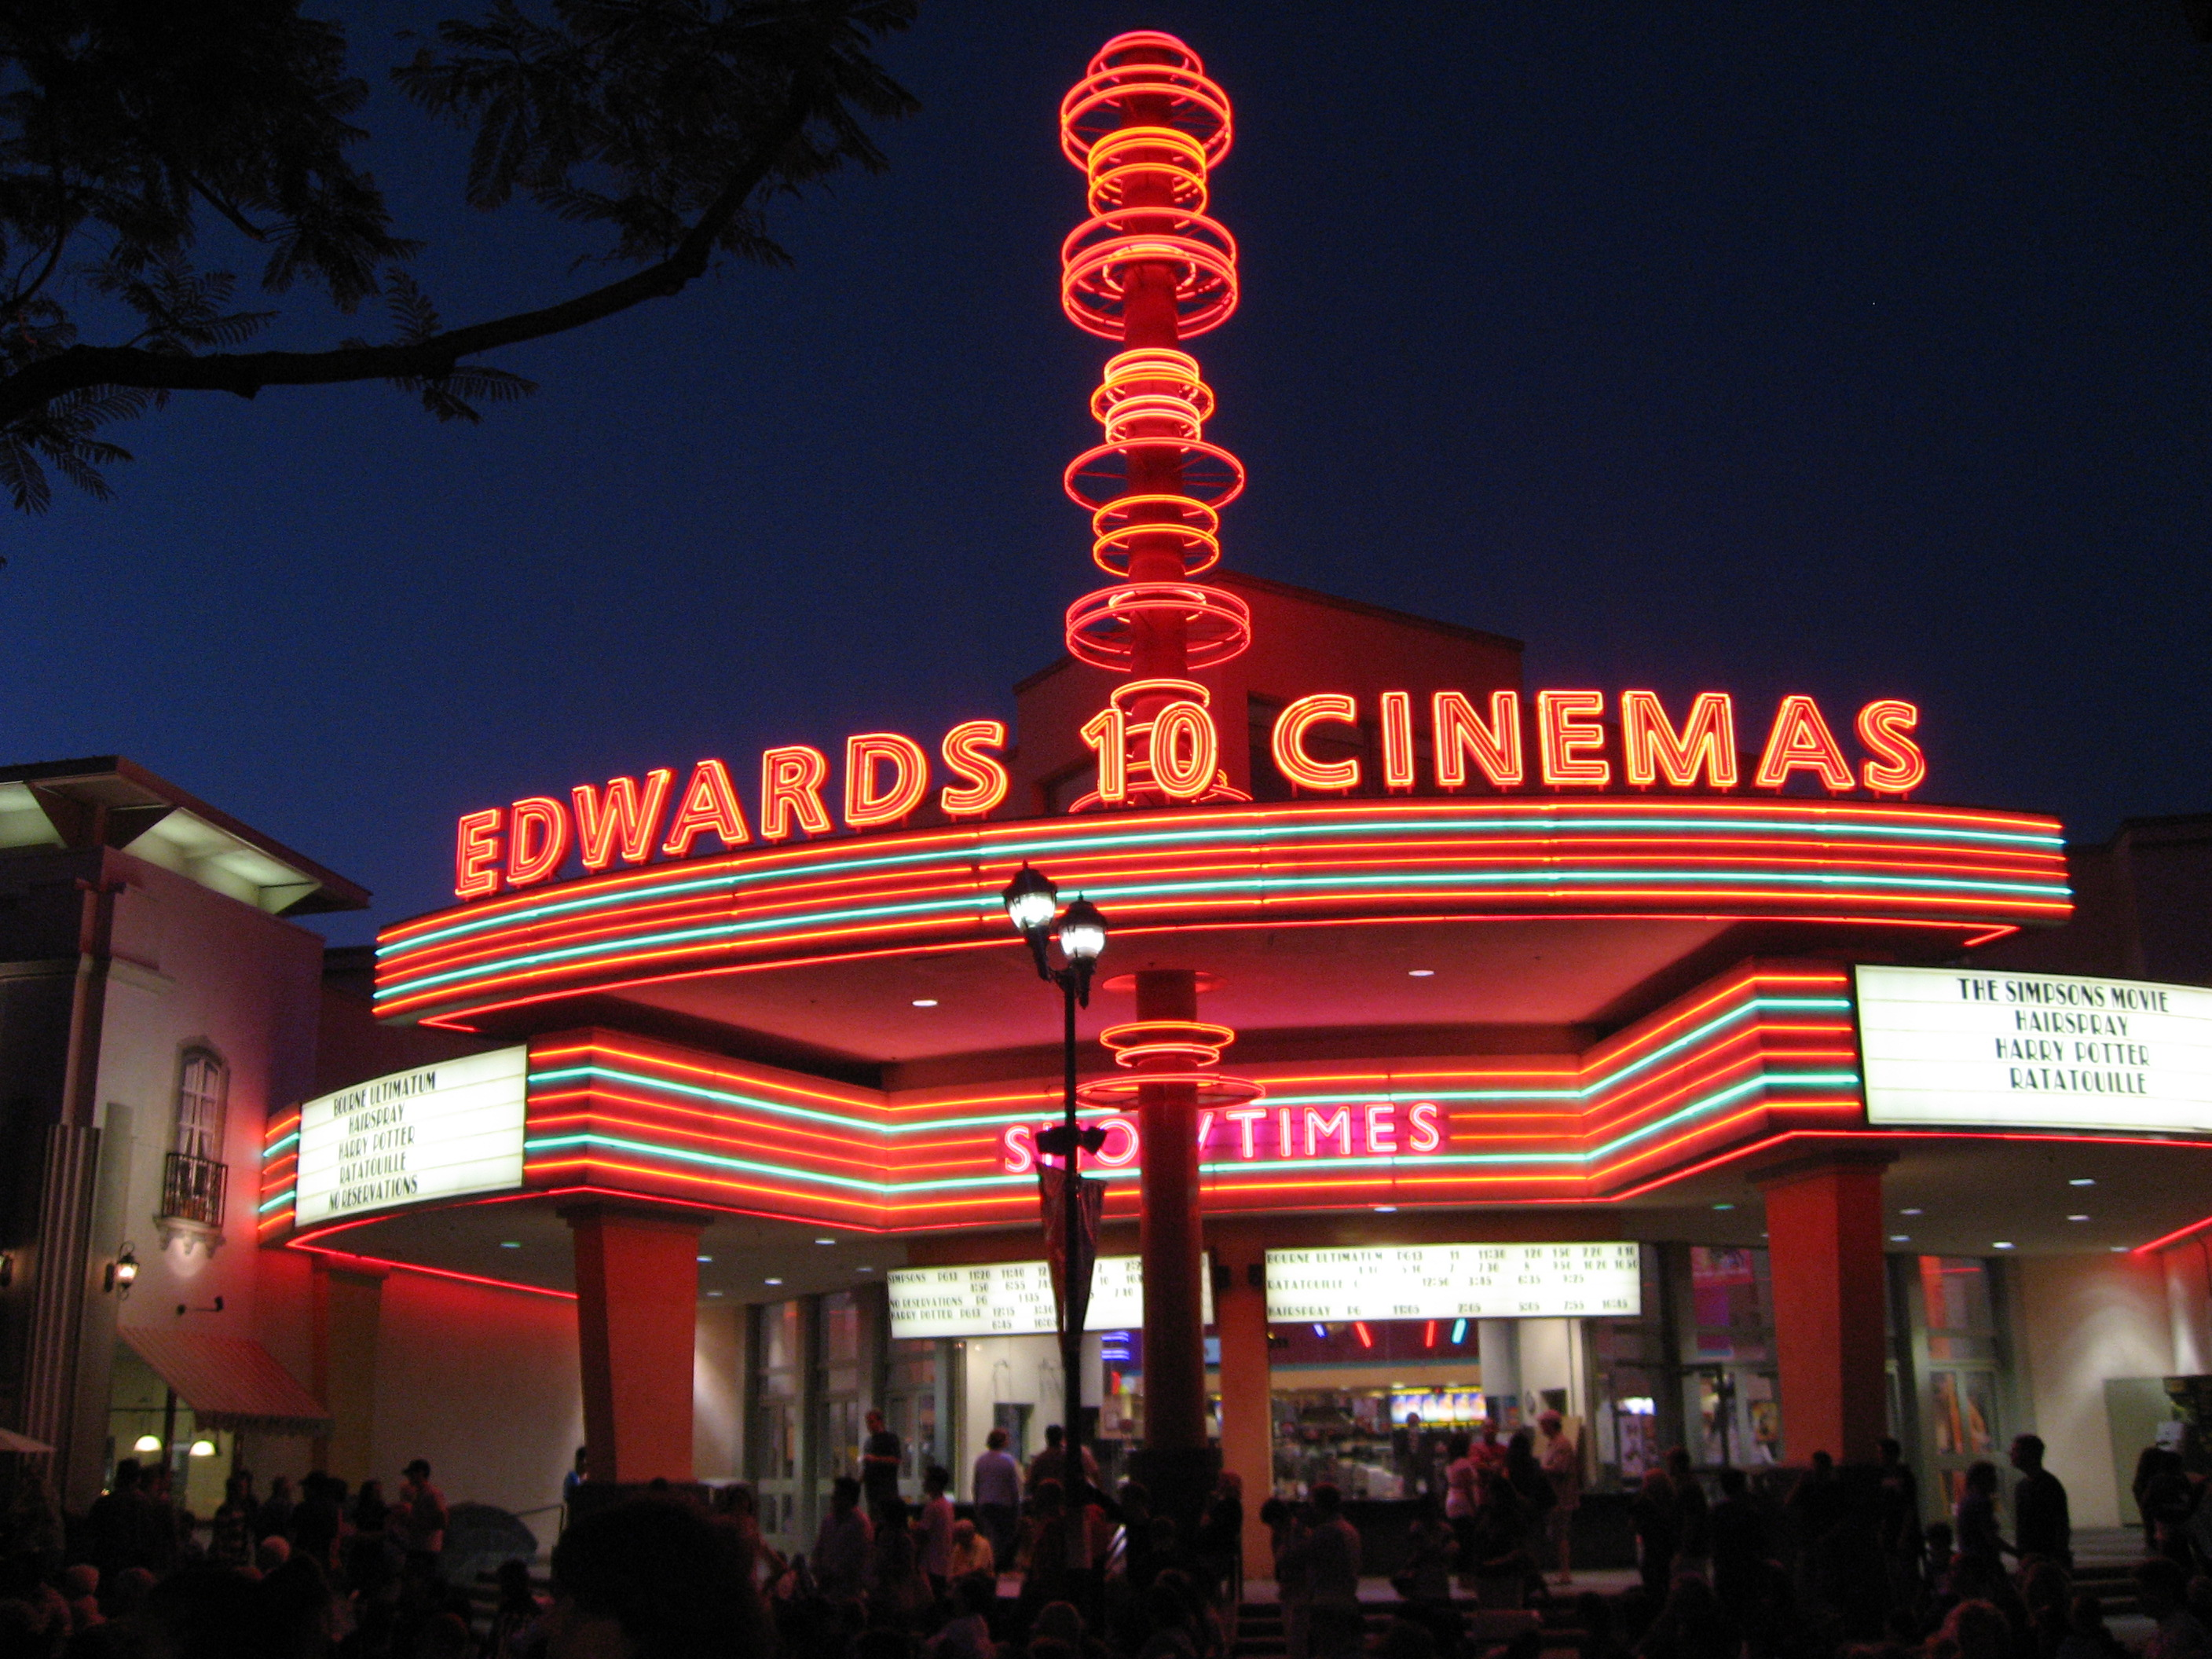 File:Brea-edwards CINEMA night.jpg - Wikipedia, the free encyclopedia